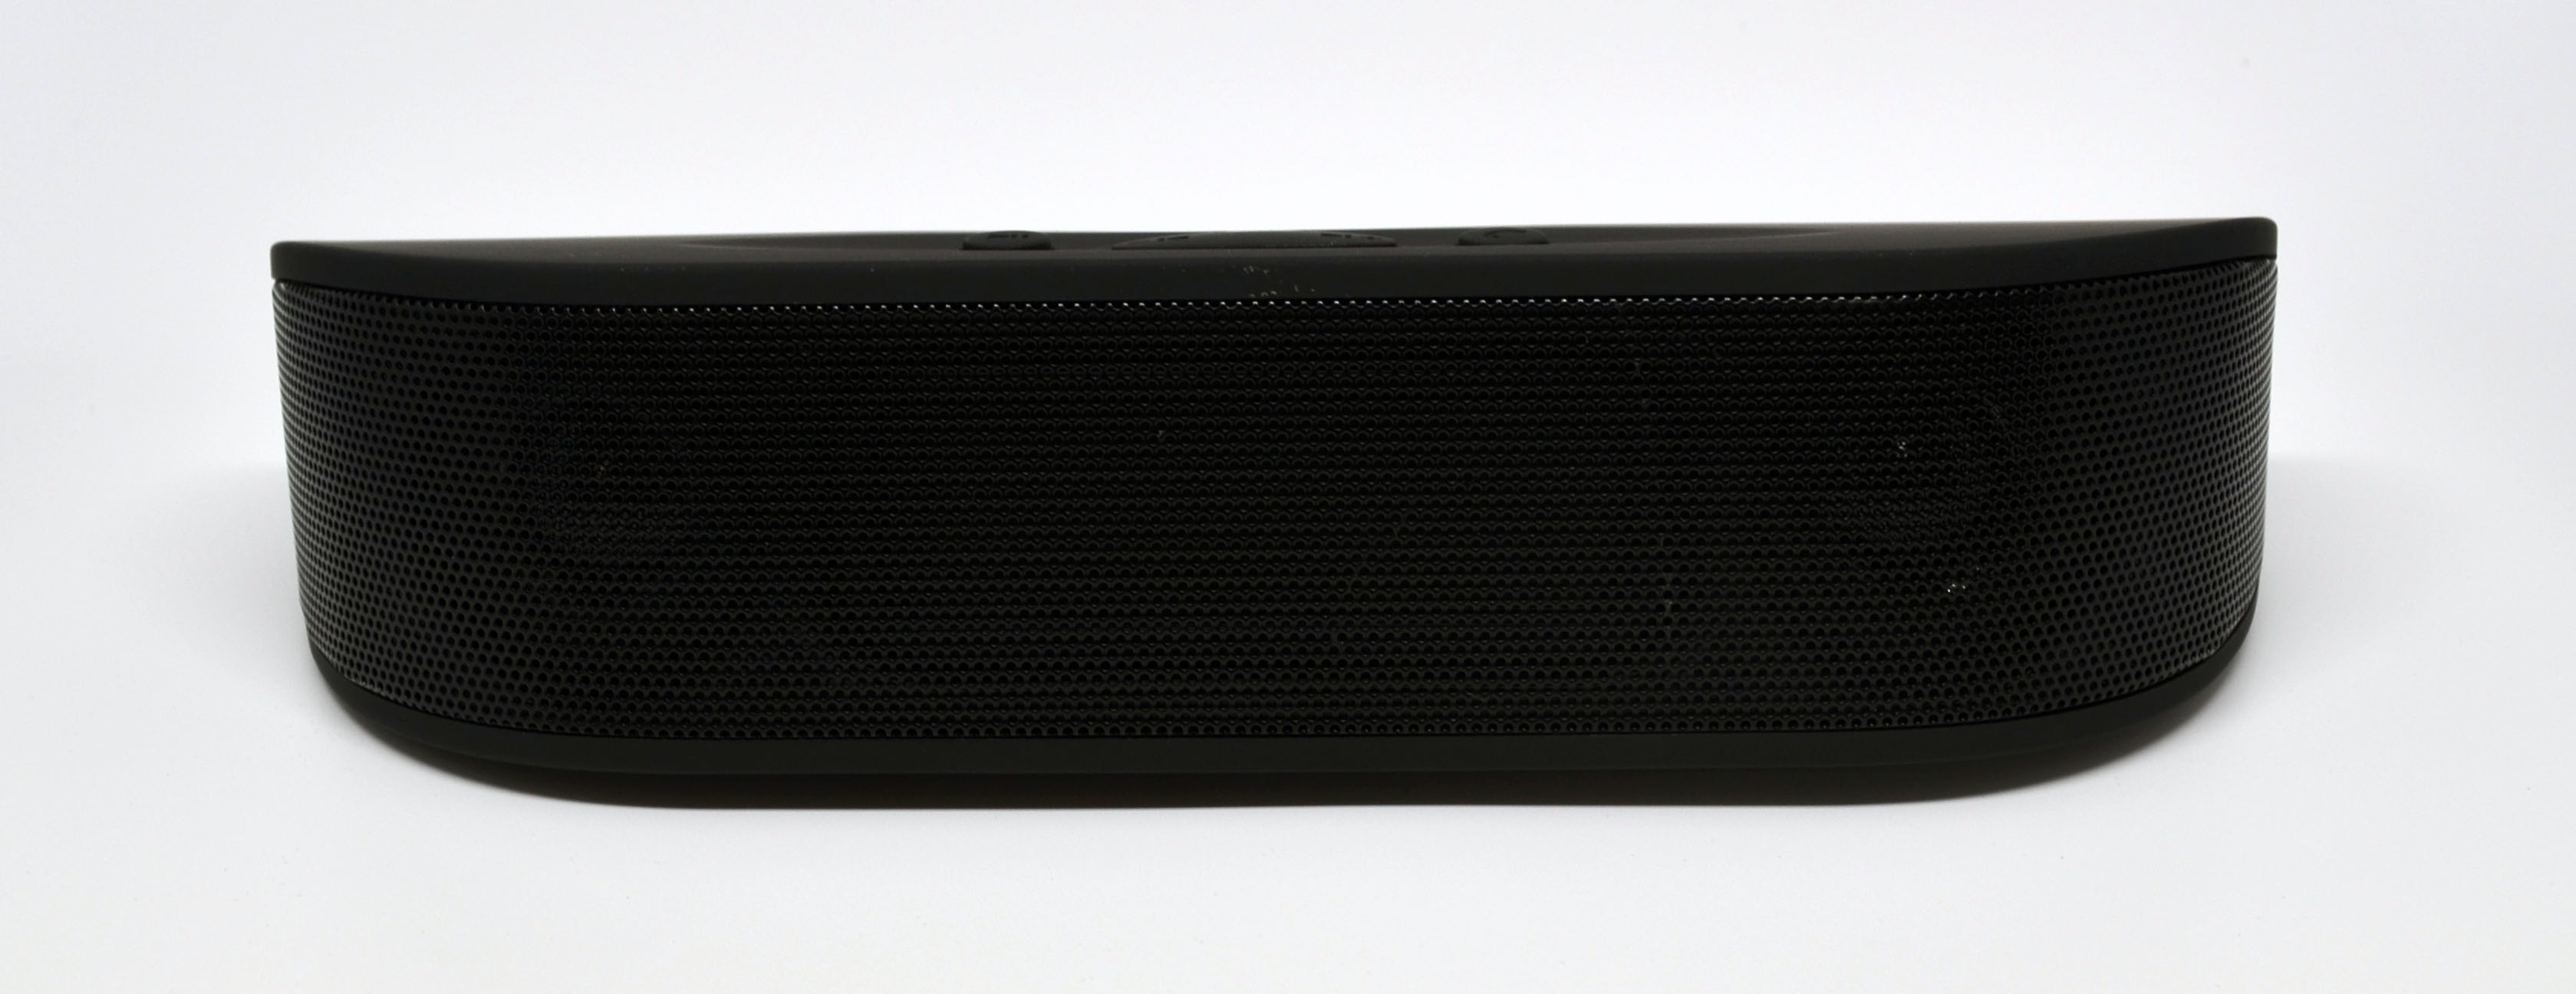 Review: WAVEstream Wireless Bluetooth Speaker